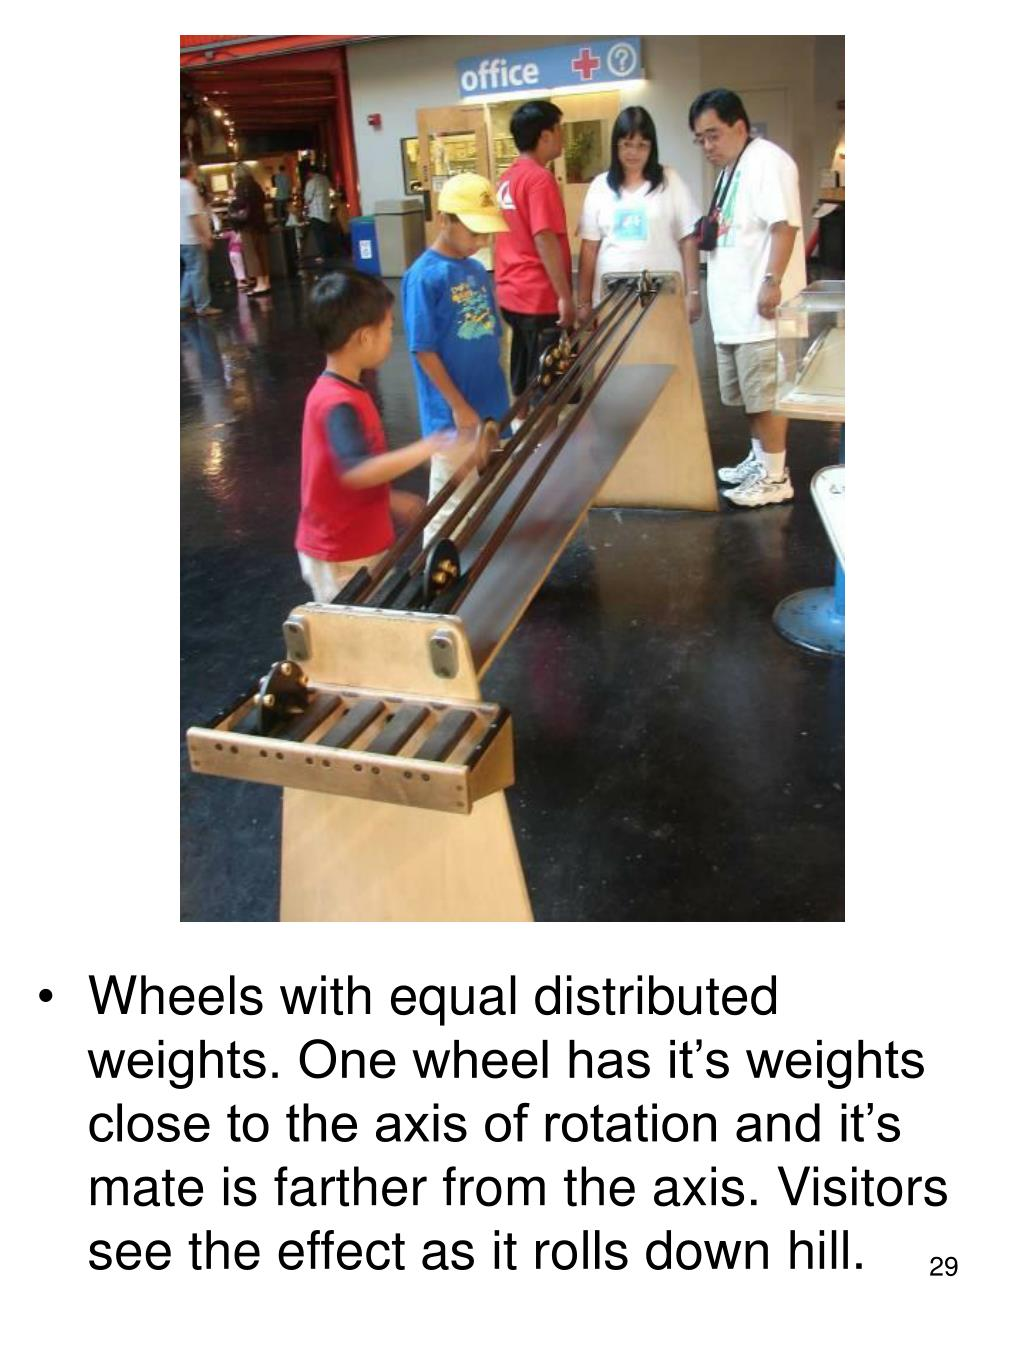 Wheels with equal distributed weights. One wheel has it's weights close to the axis of rotation and it's mate is farther from the axis. Visitors see the effect as it rolls down hill.